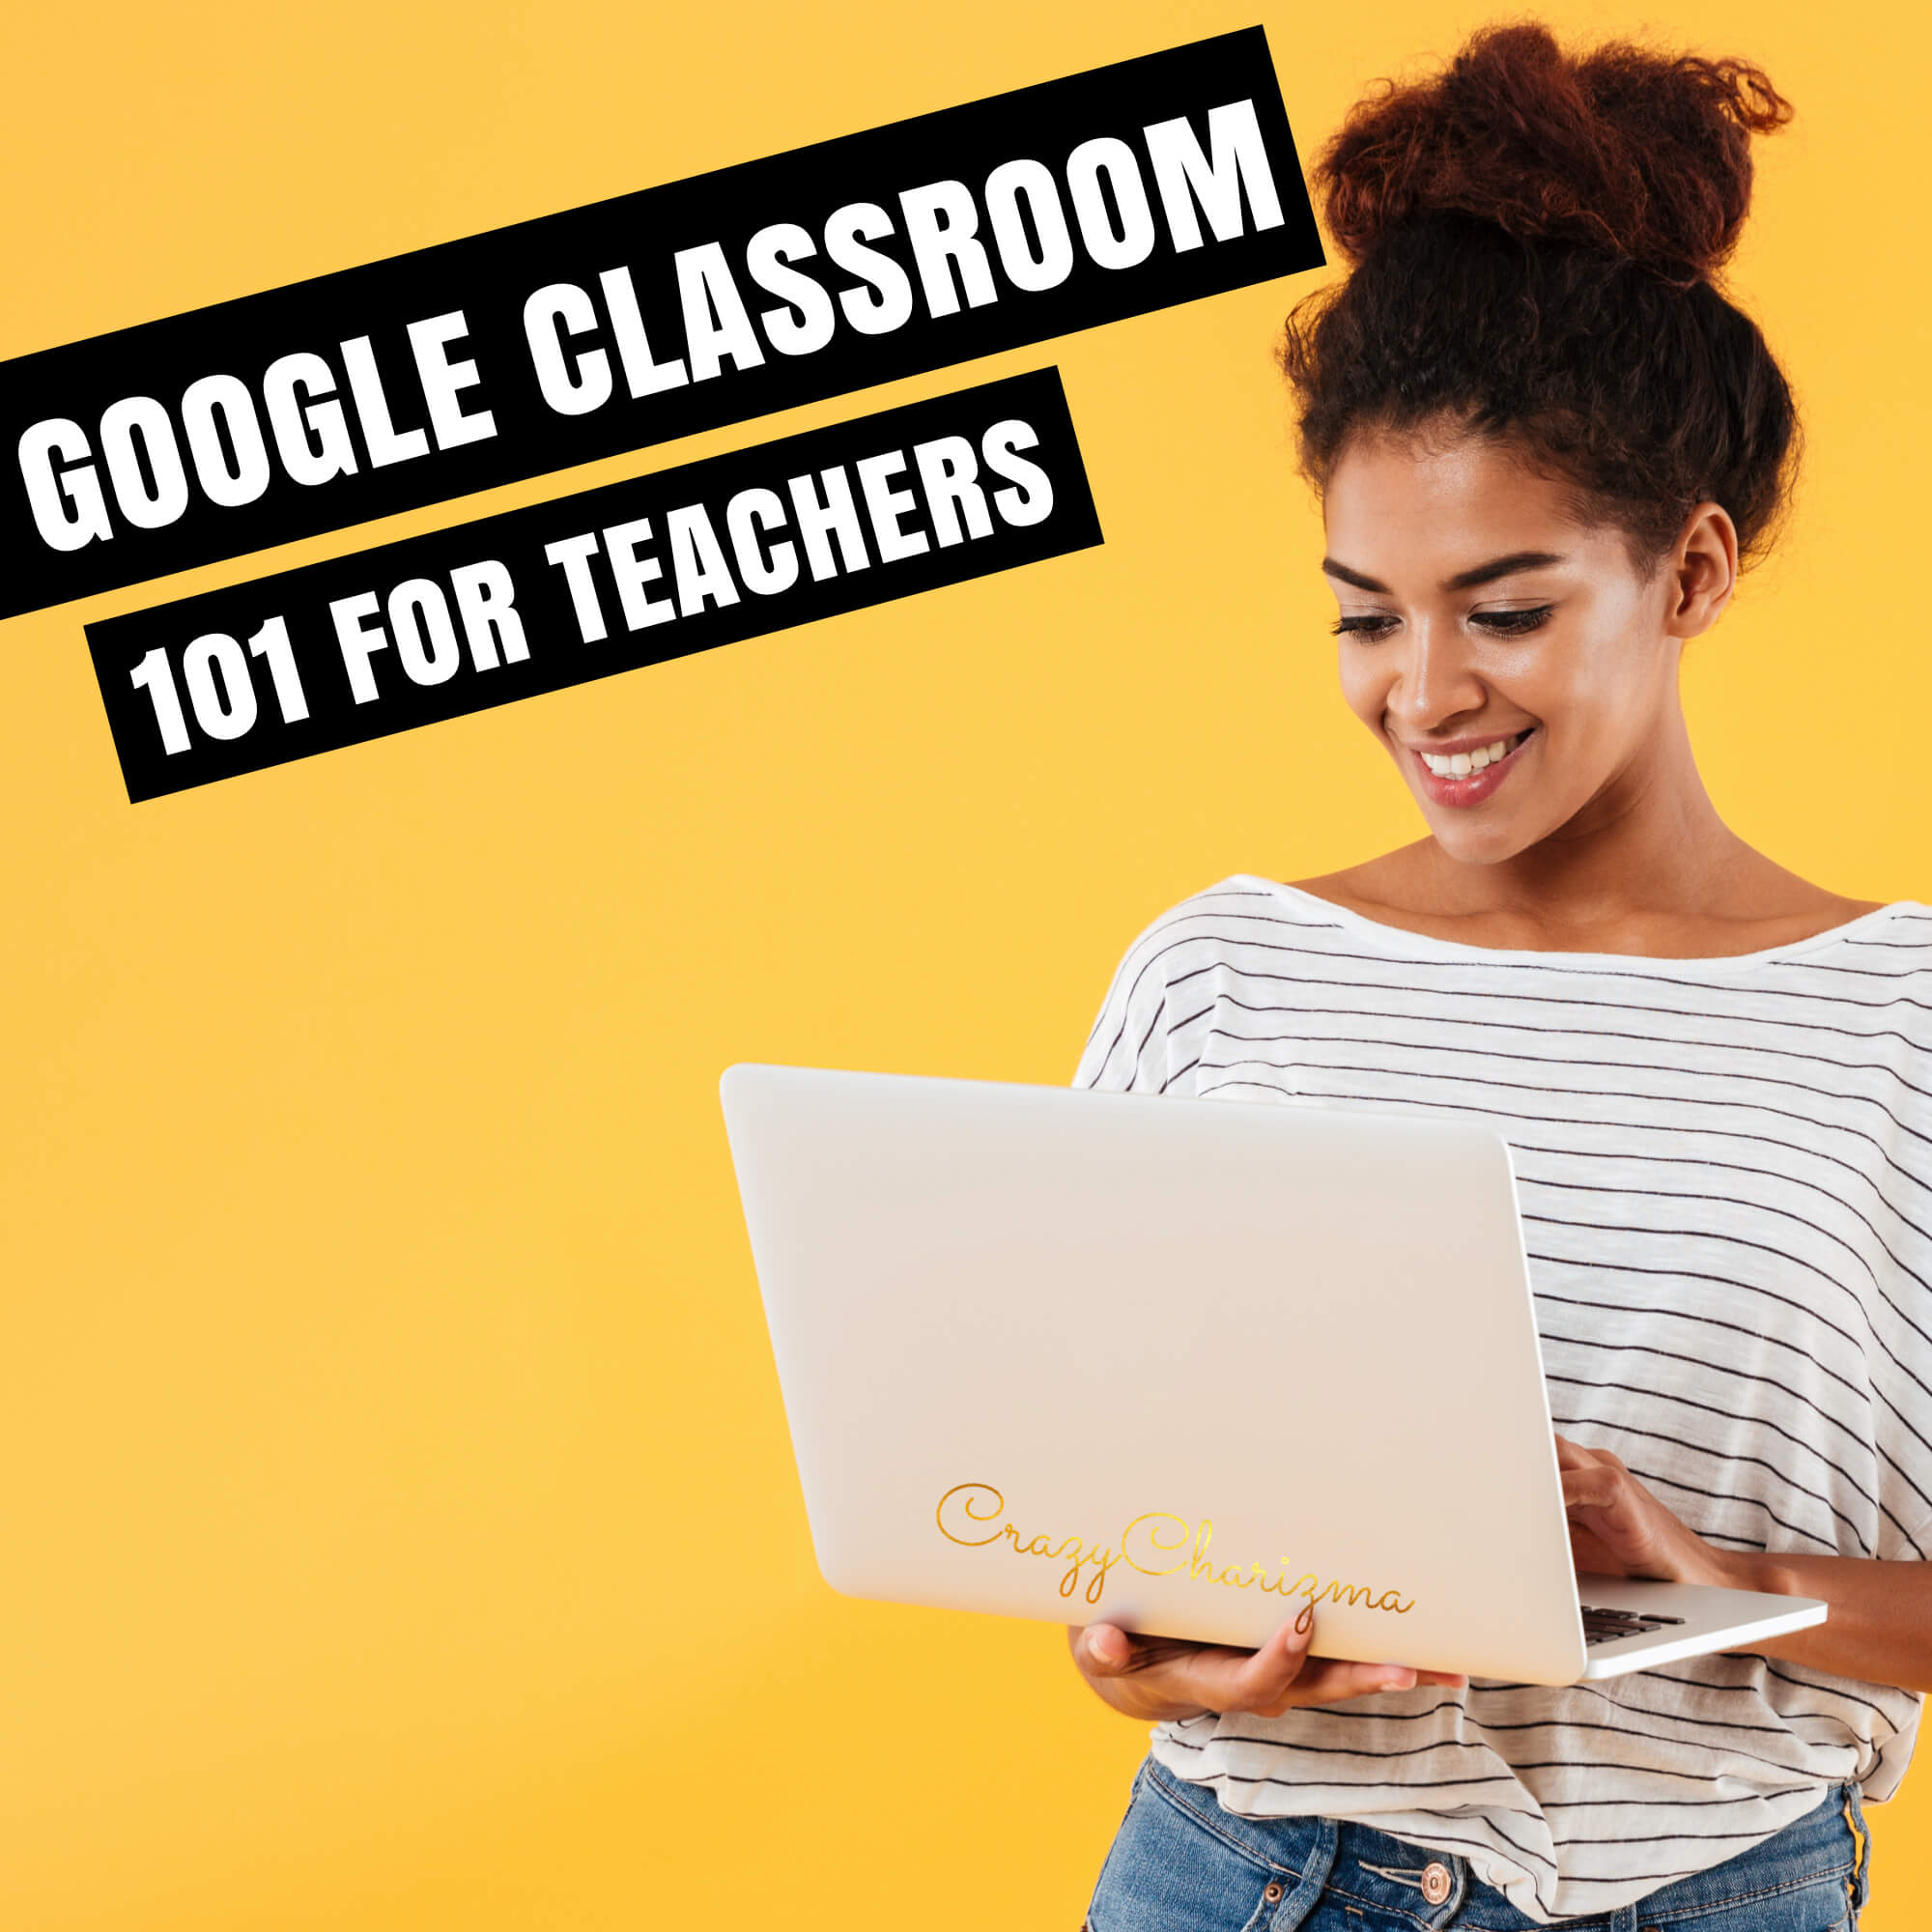 Google Classroom 101 for teachers